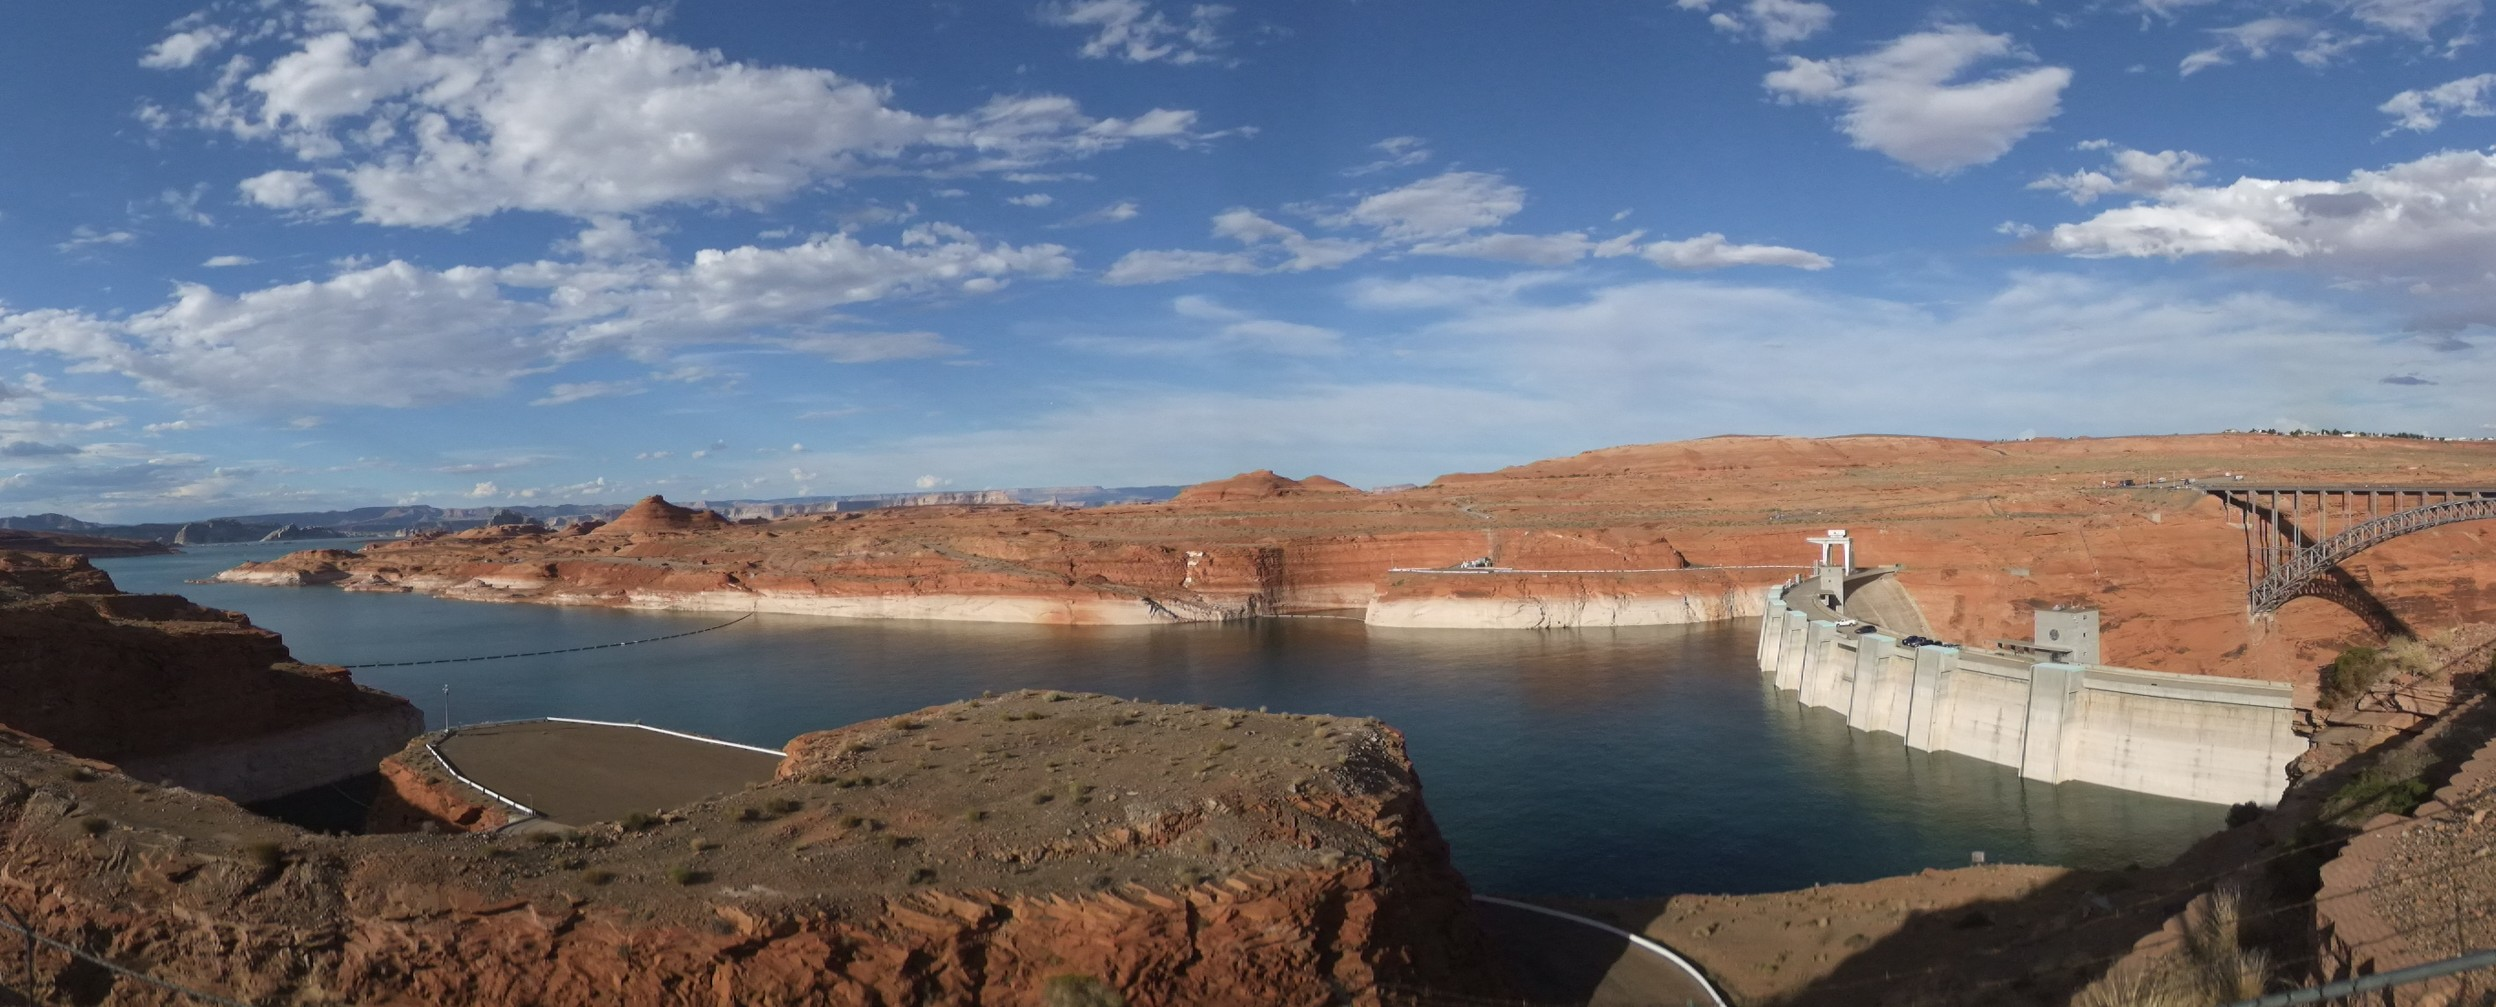 Barrage de Glen Canyon - Lac Powell - Colorado - Gédéon - Panorama - Un autre regard sur la Terre